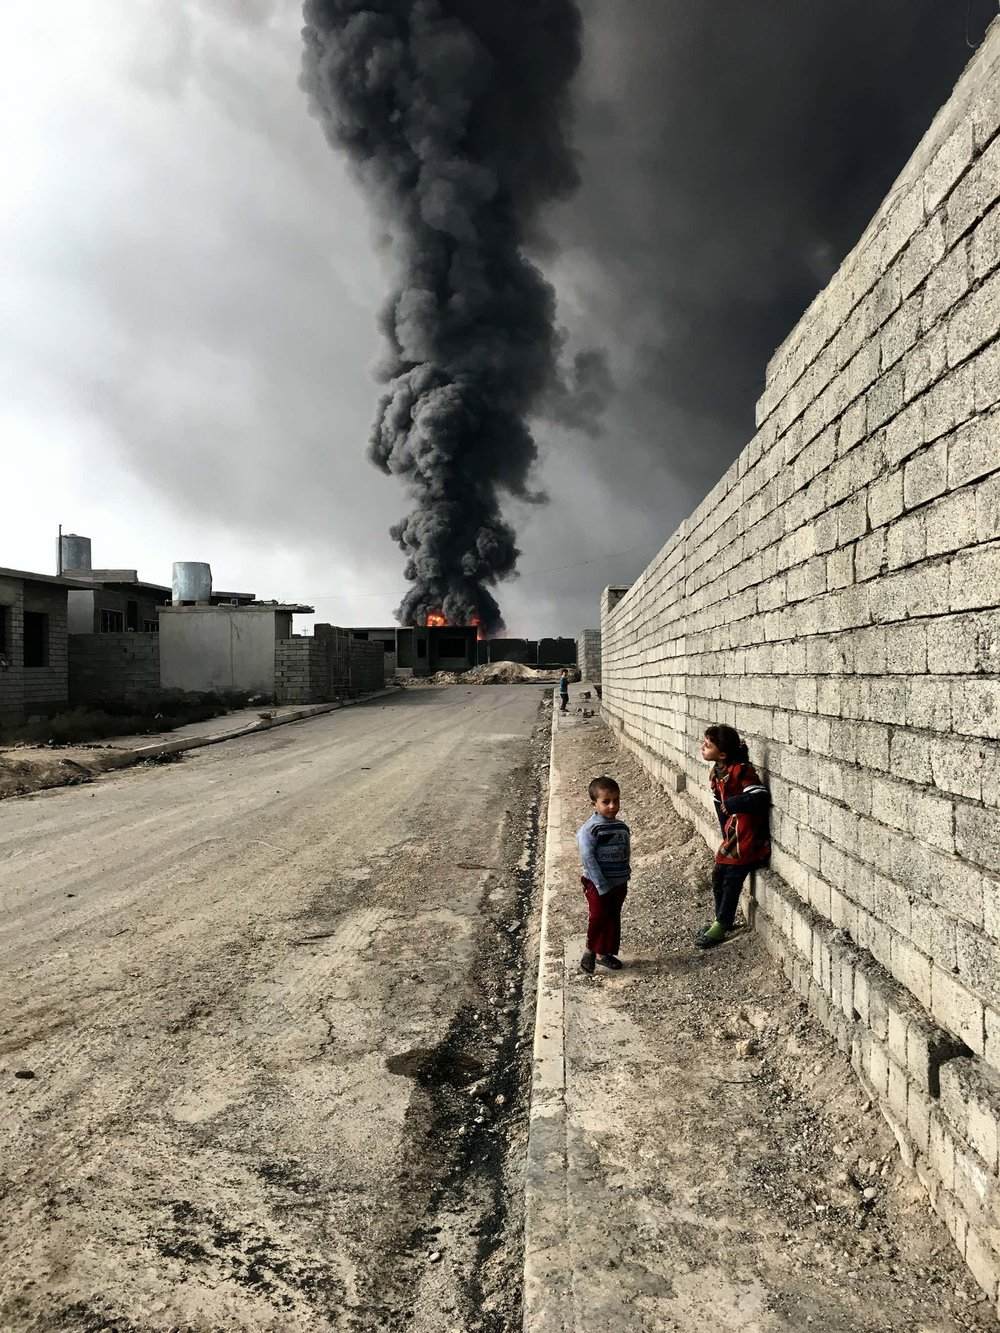 Overall winner: Sebastiano Tomada of New York City took the grand prize and was photographer of the year for a shot of children in Qayyarah, Iraq, near fire and smoke billowing from oil wells set ablaze by Islamic State militants